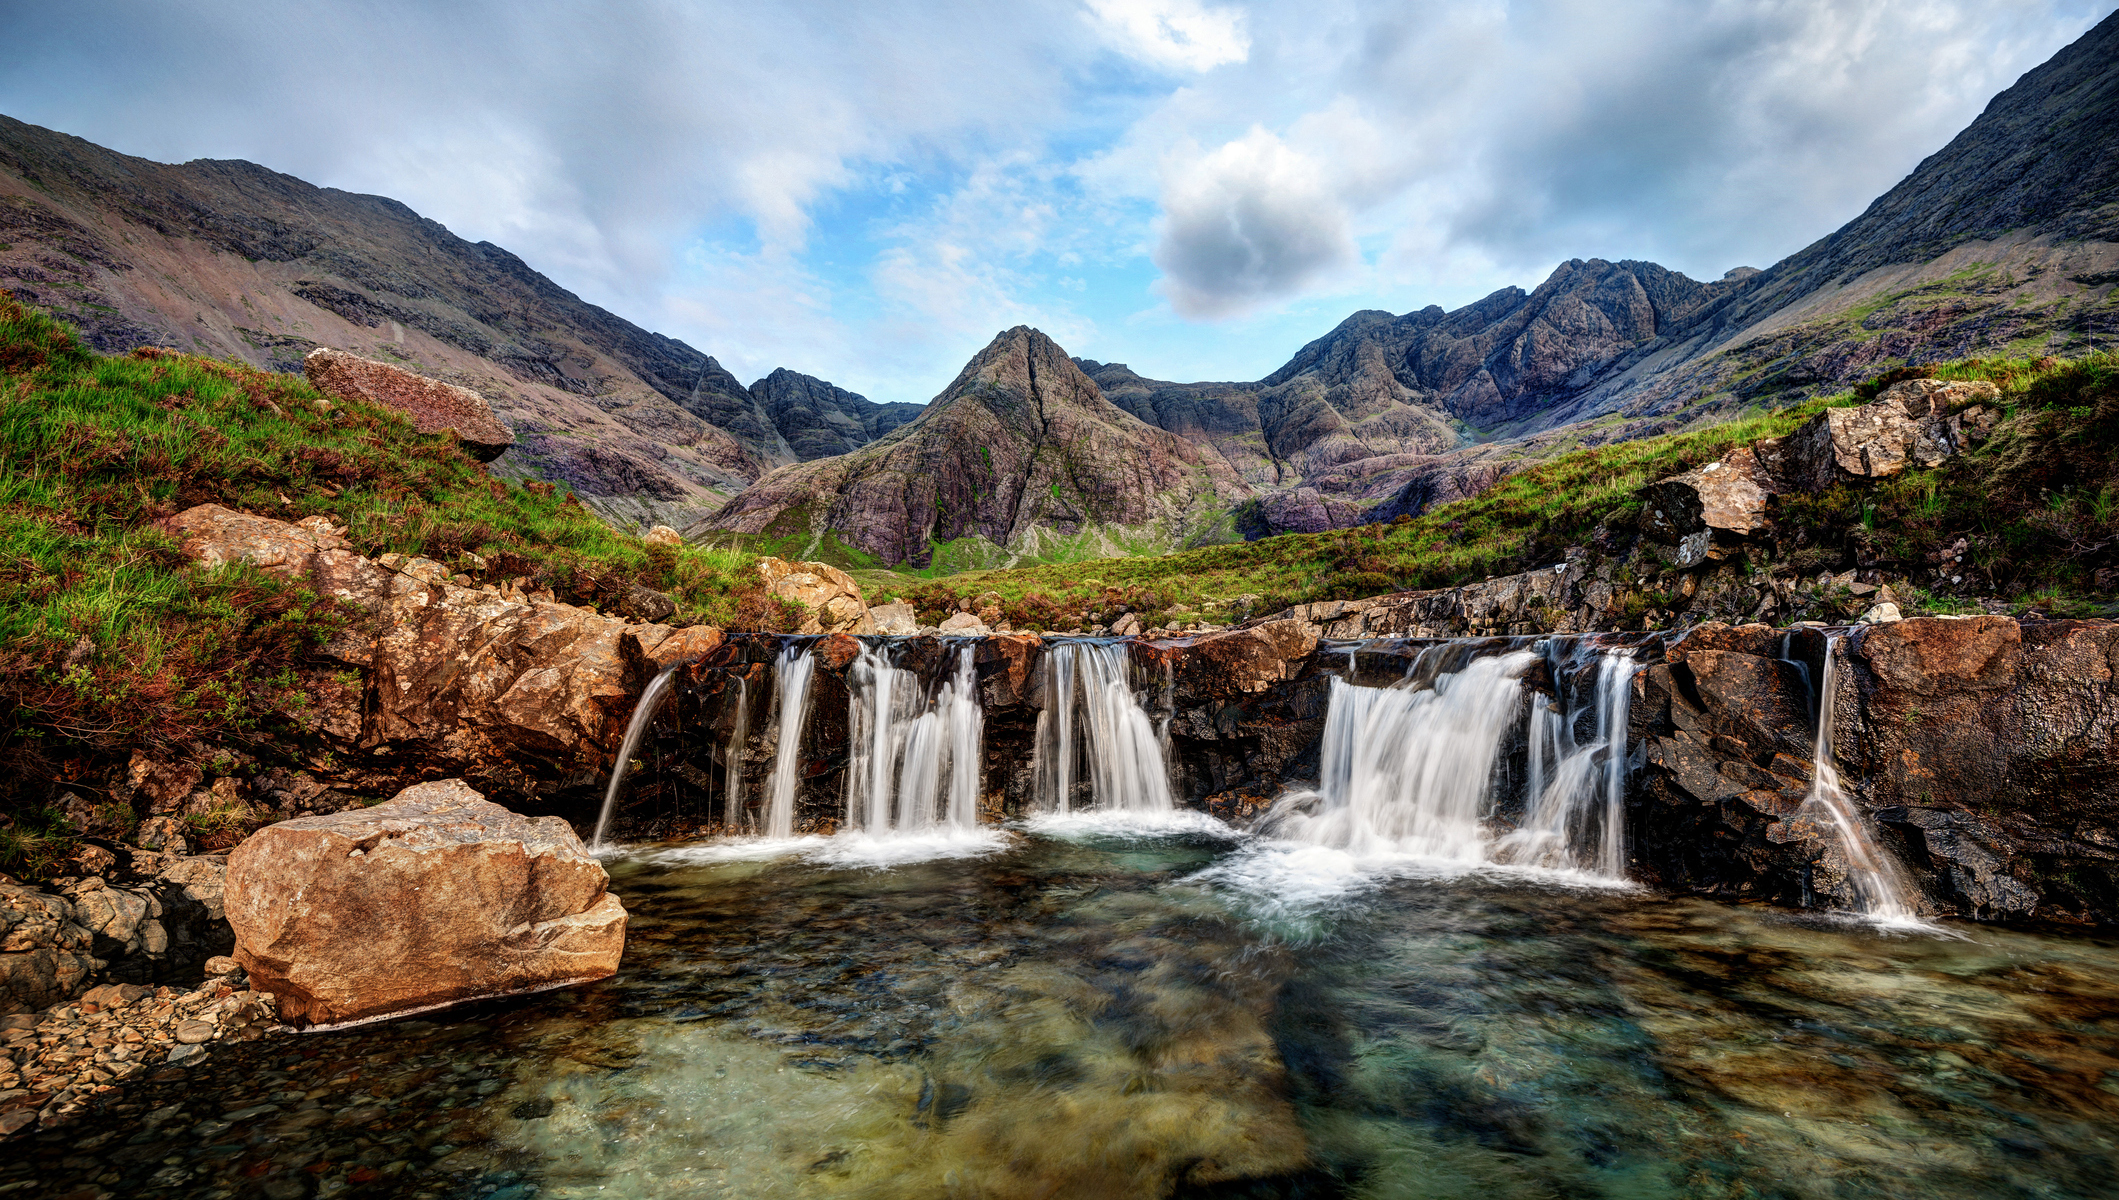 Wild swimming in the Fairy Pools, Skye